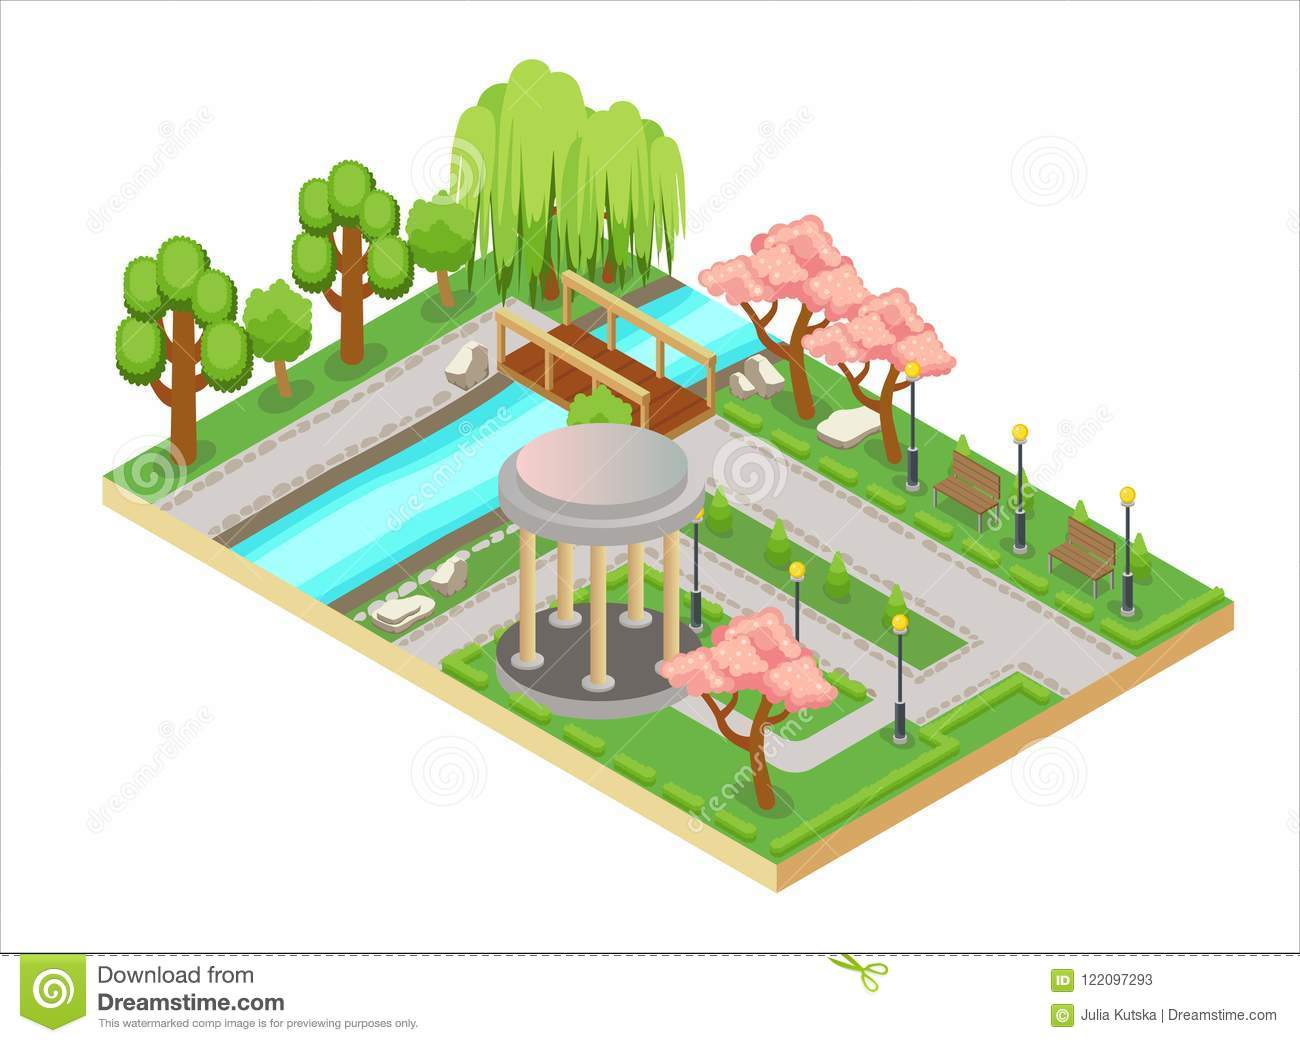 Colorful Isometric Three Dimensional Illustration Of Oriental Garden